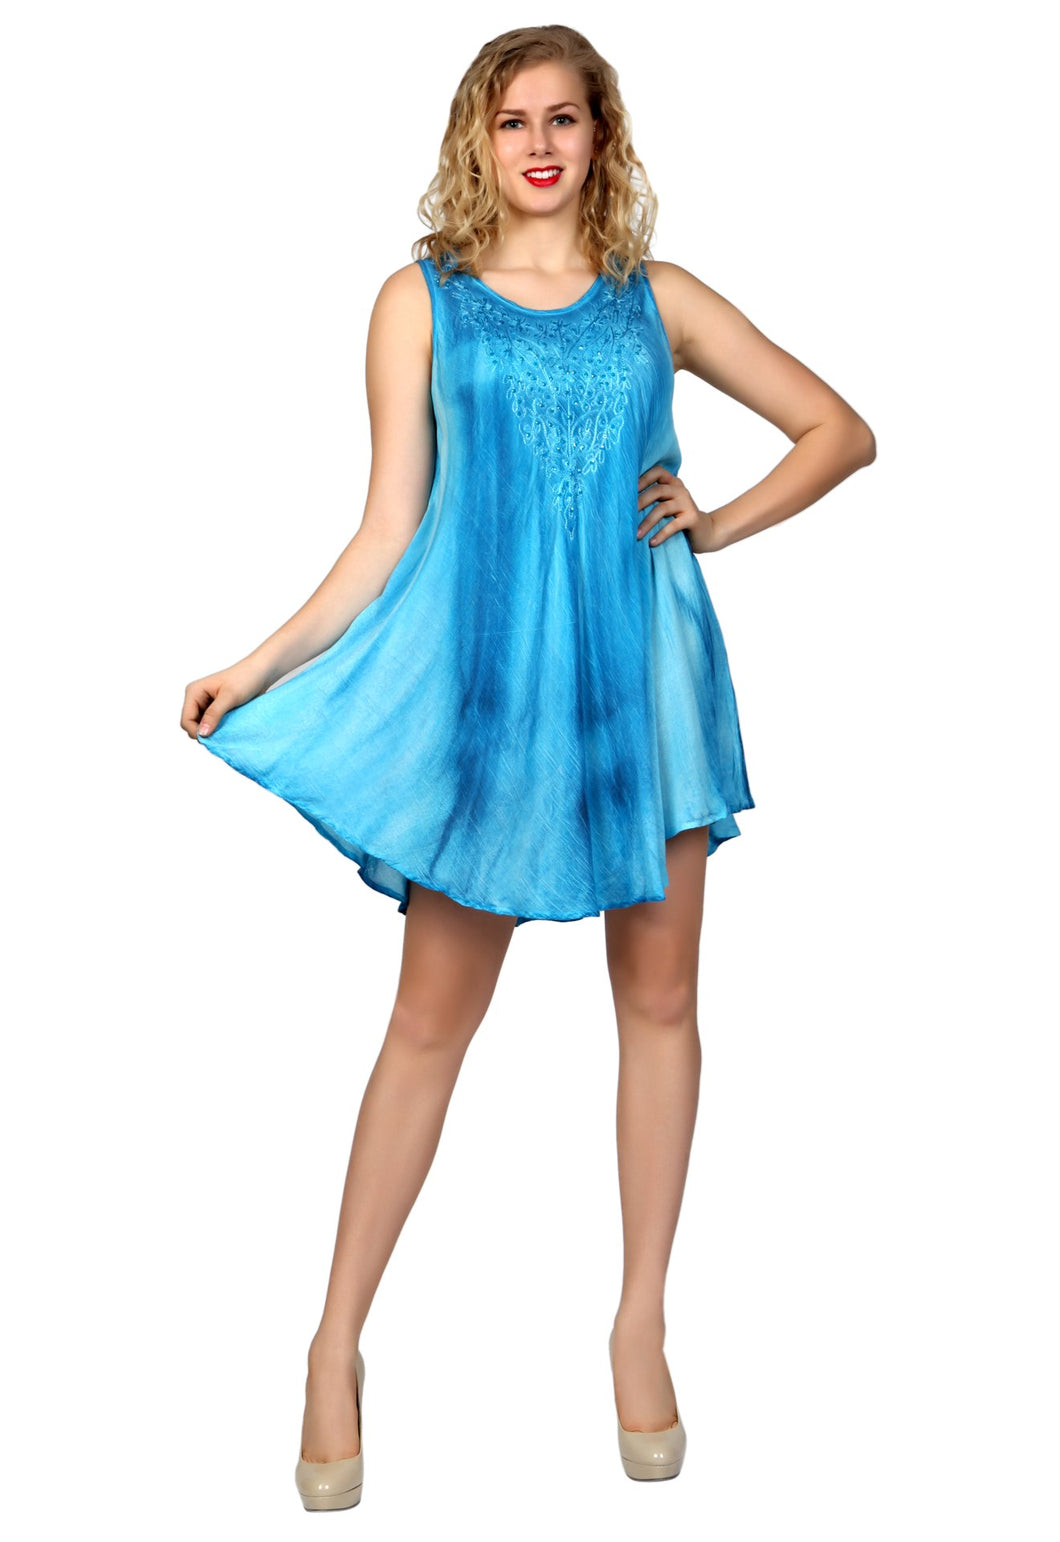 Tie Dyed Solid Mini Dress Top with Embroidery and Sequins Trim